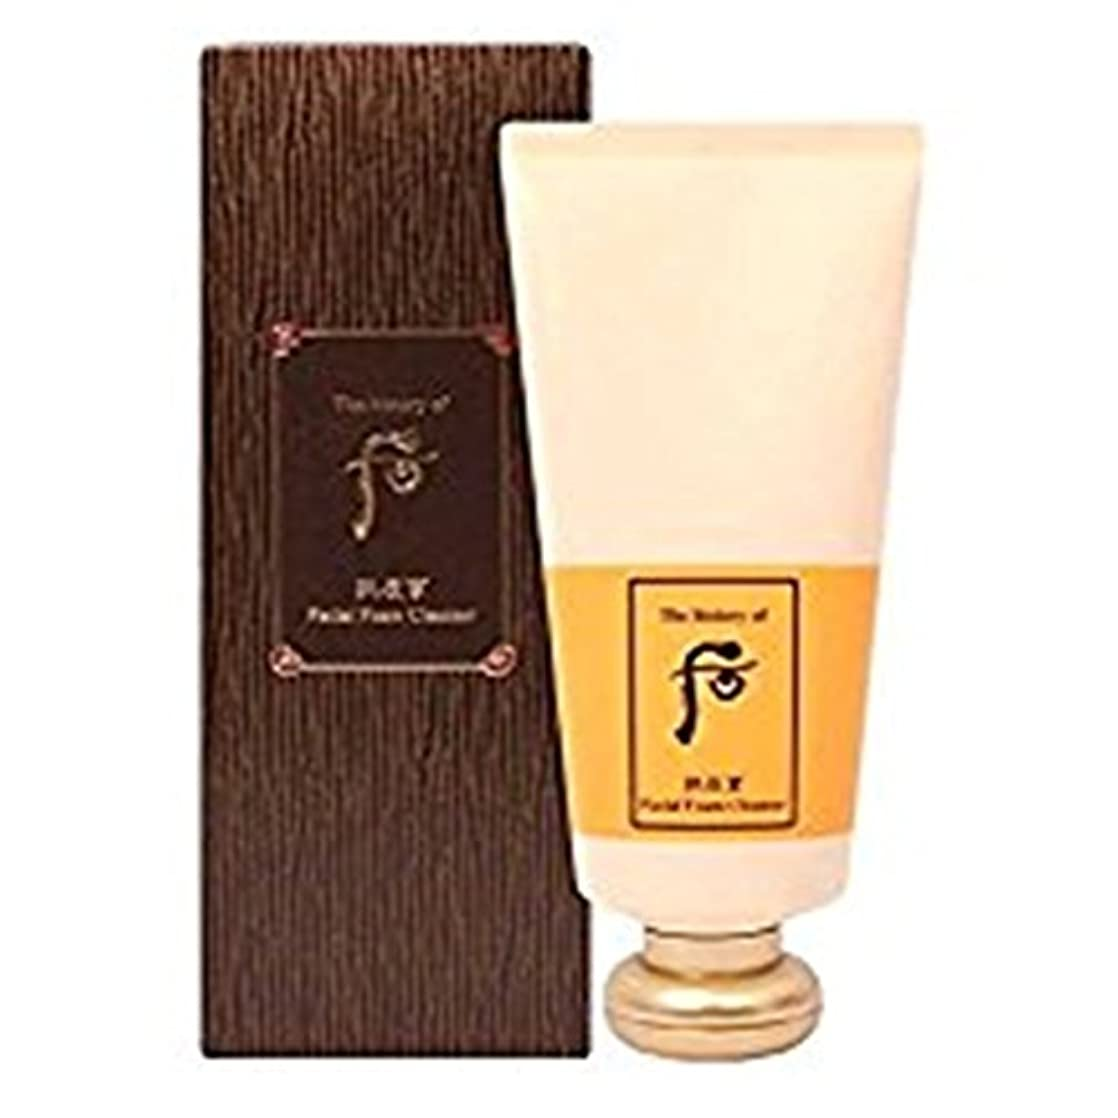 [The History Of Whoo] Whoo 后(フー)ホームクレンザー180ml [海外直送品]